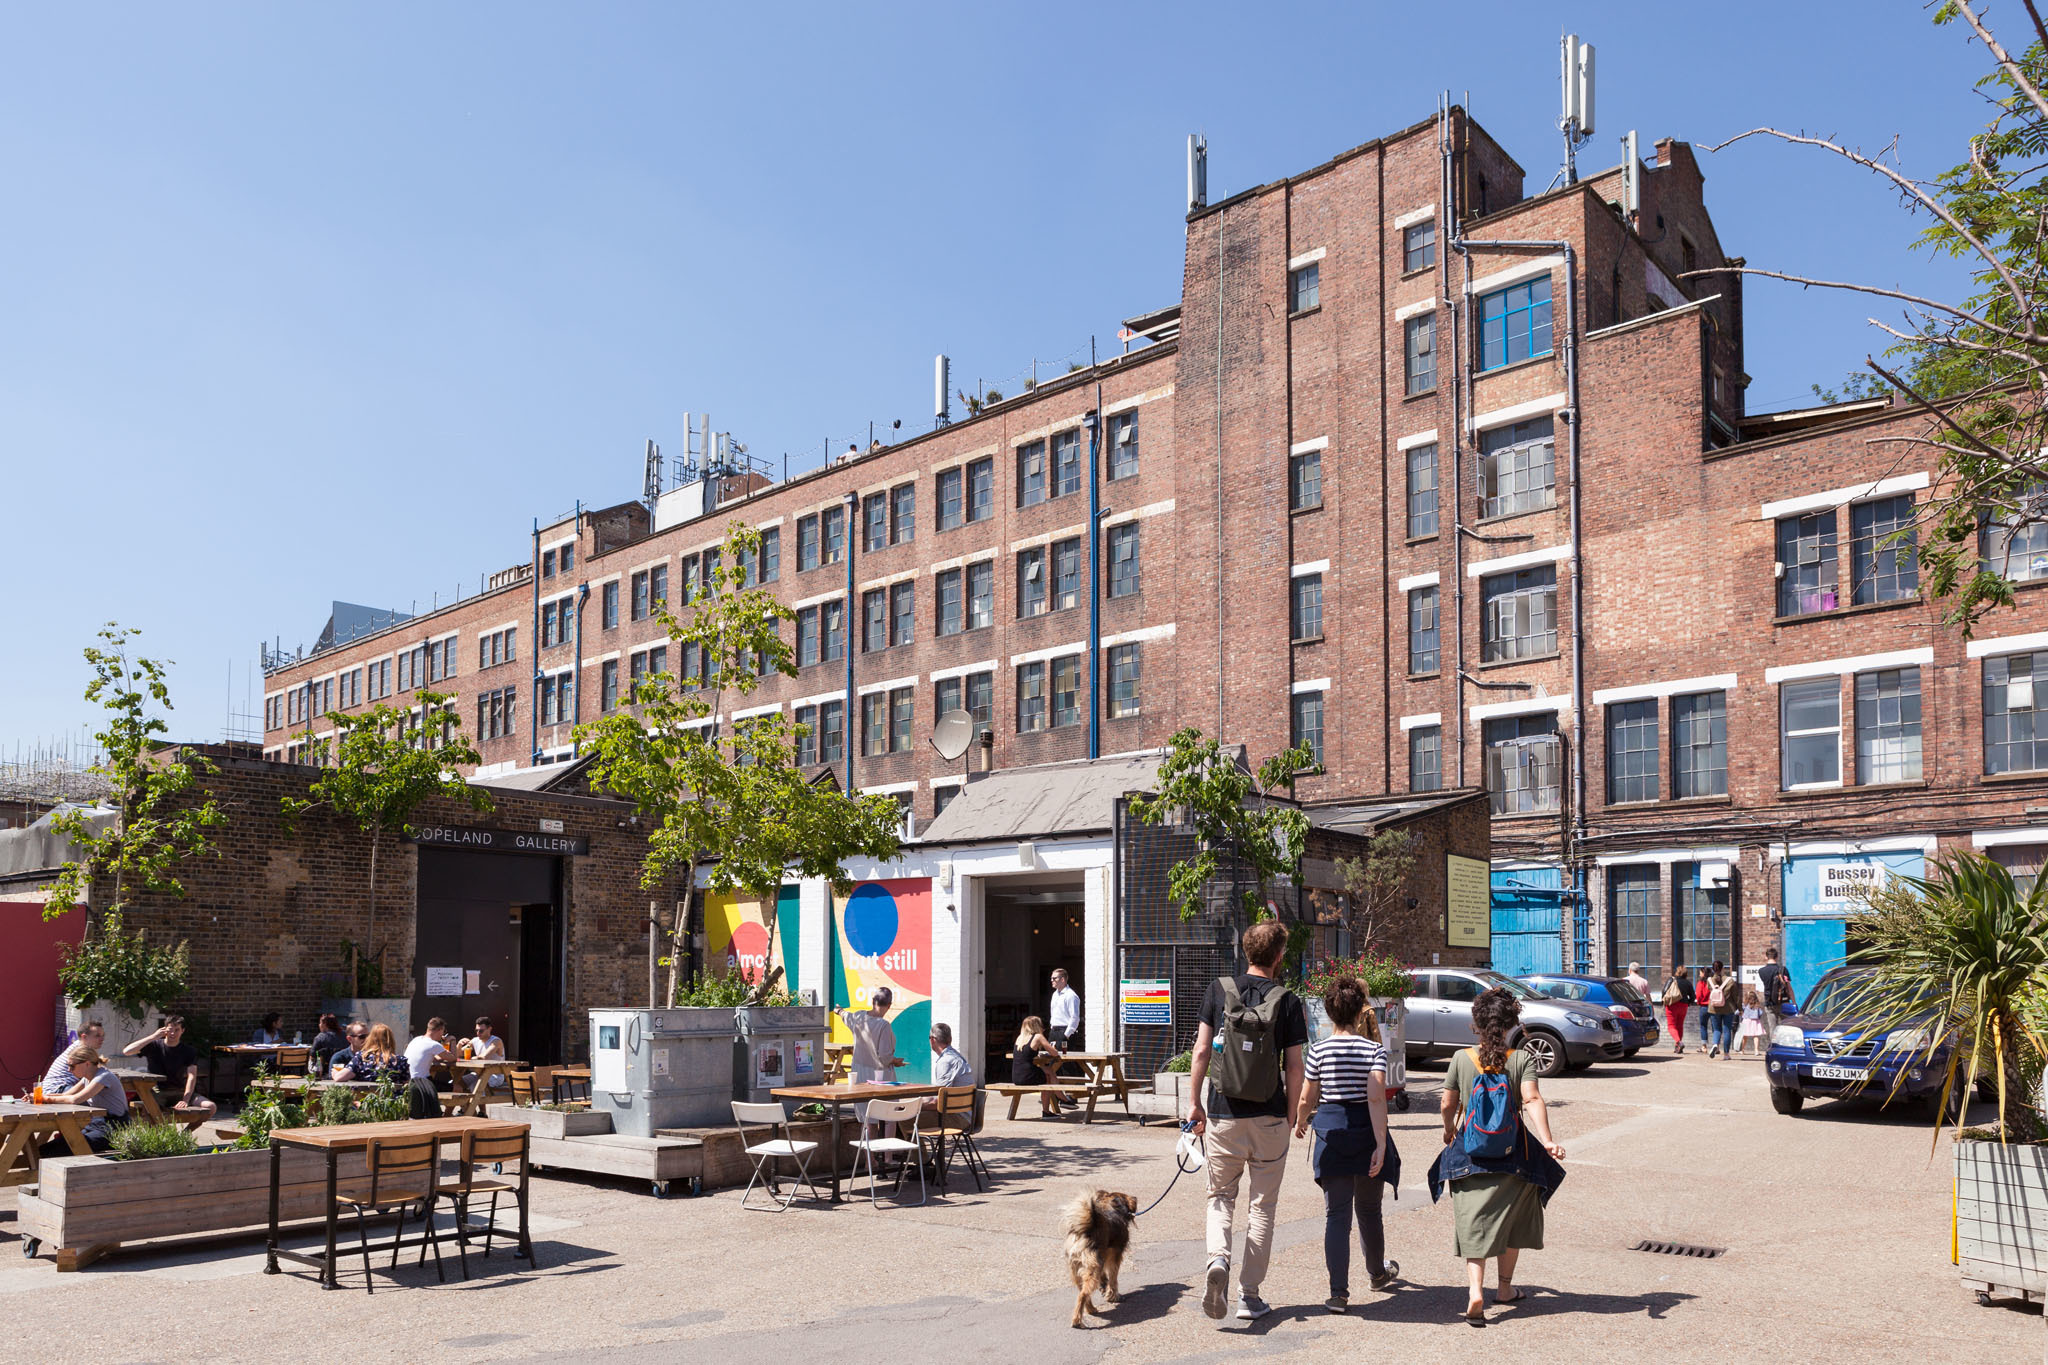 We've found London's coolest neighbourhood –and it's not Hackney